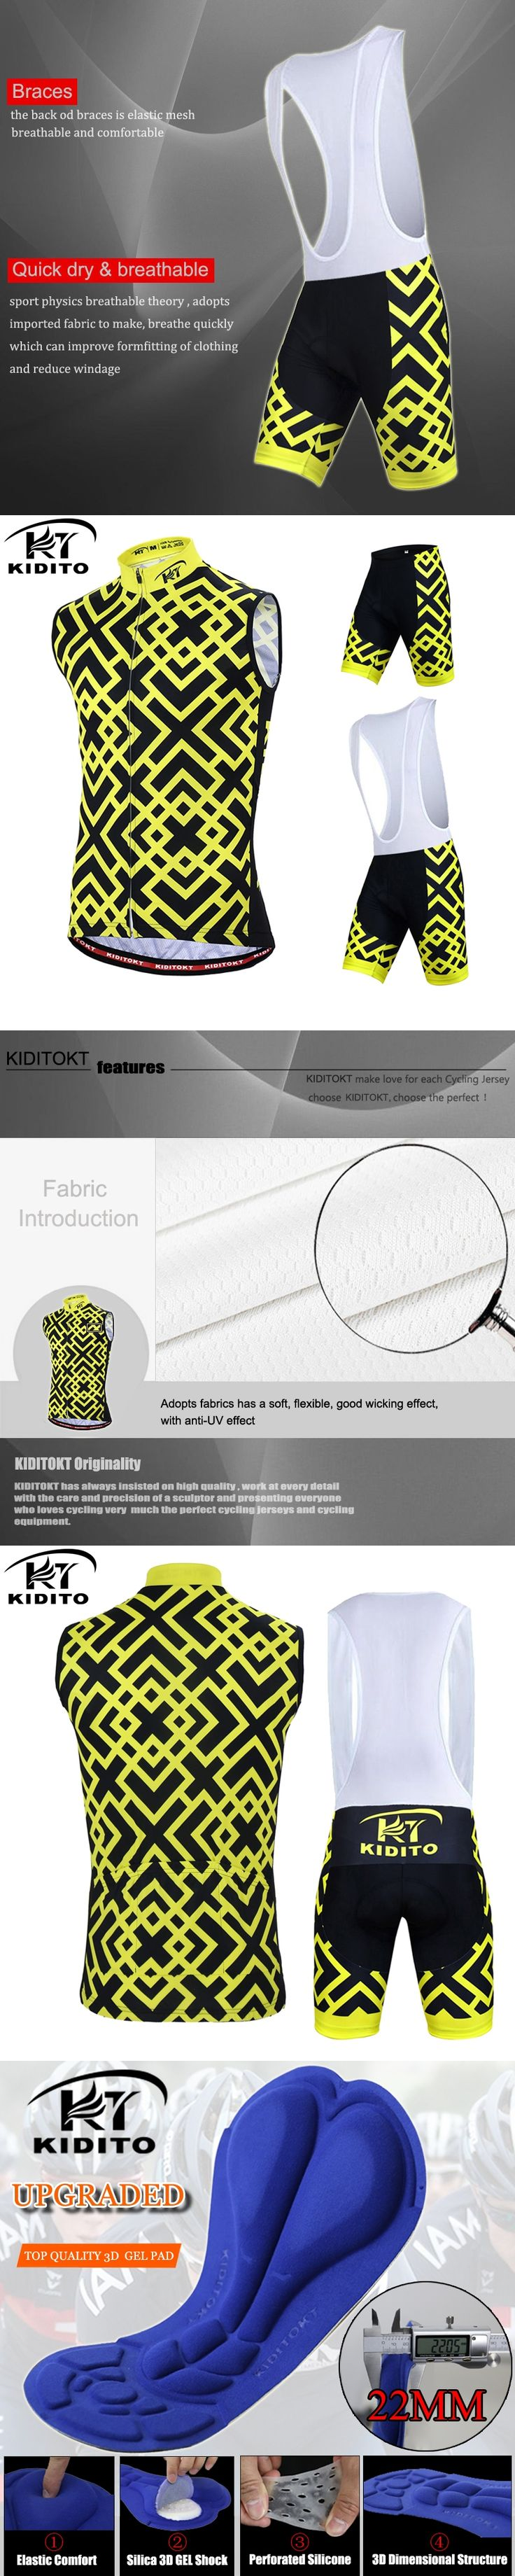 KIDITOKT  Lucius Breathable Pro Sleeveless Cycling Jersey Summer MTB Clothes Bicycle Clothing Ropa Maillot Ciclismo Bike Vests